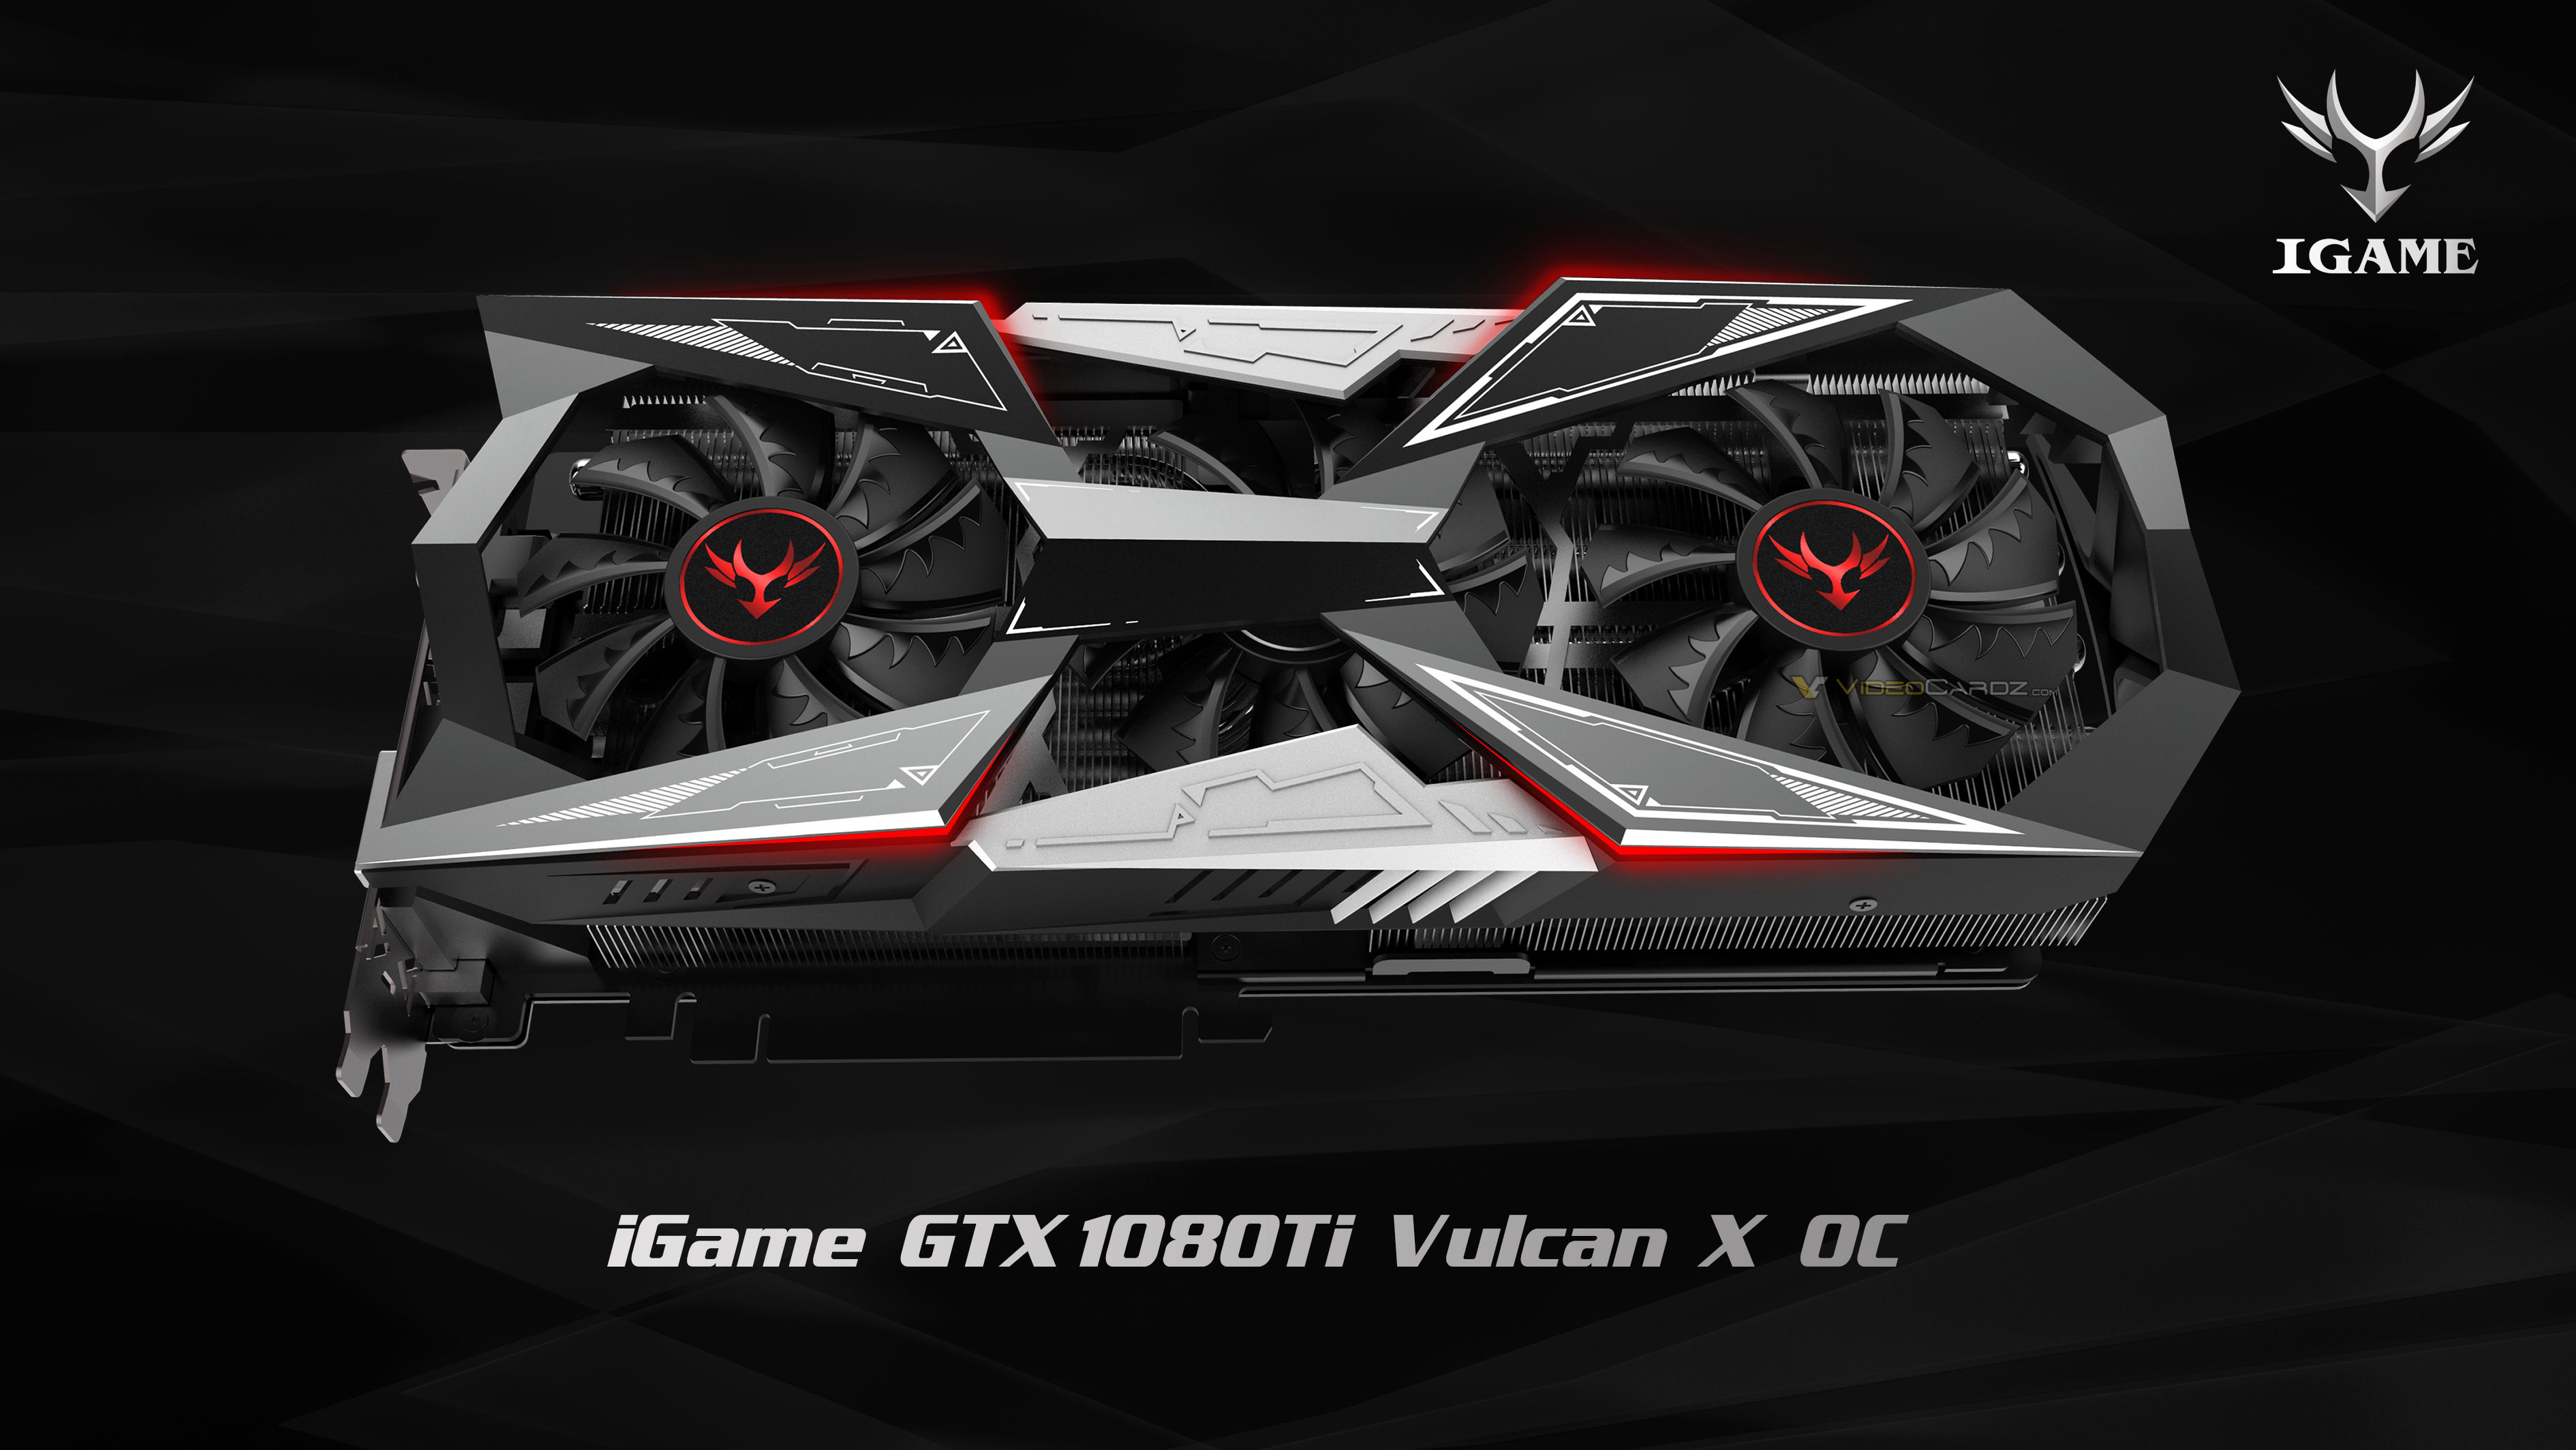 Colorful igame gtx 1080 ti vulcan